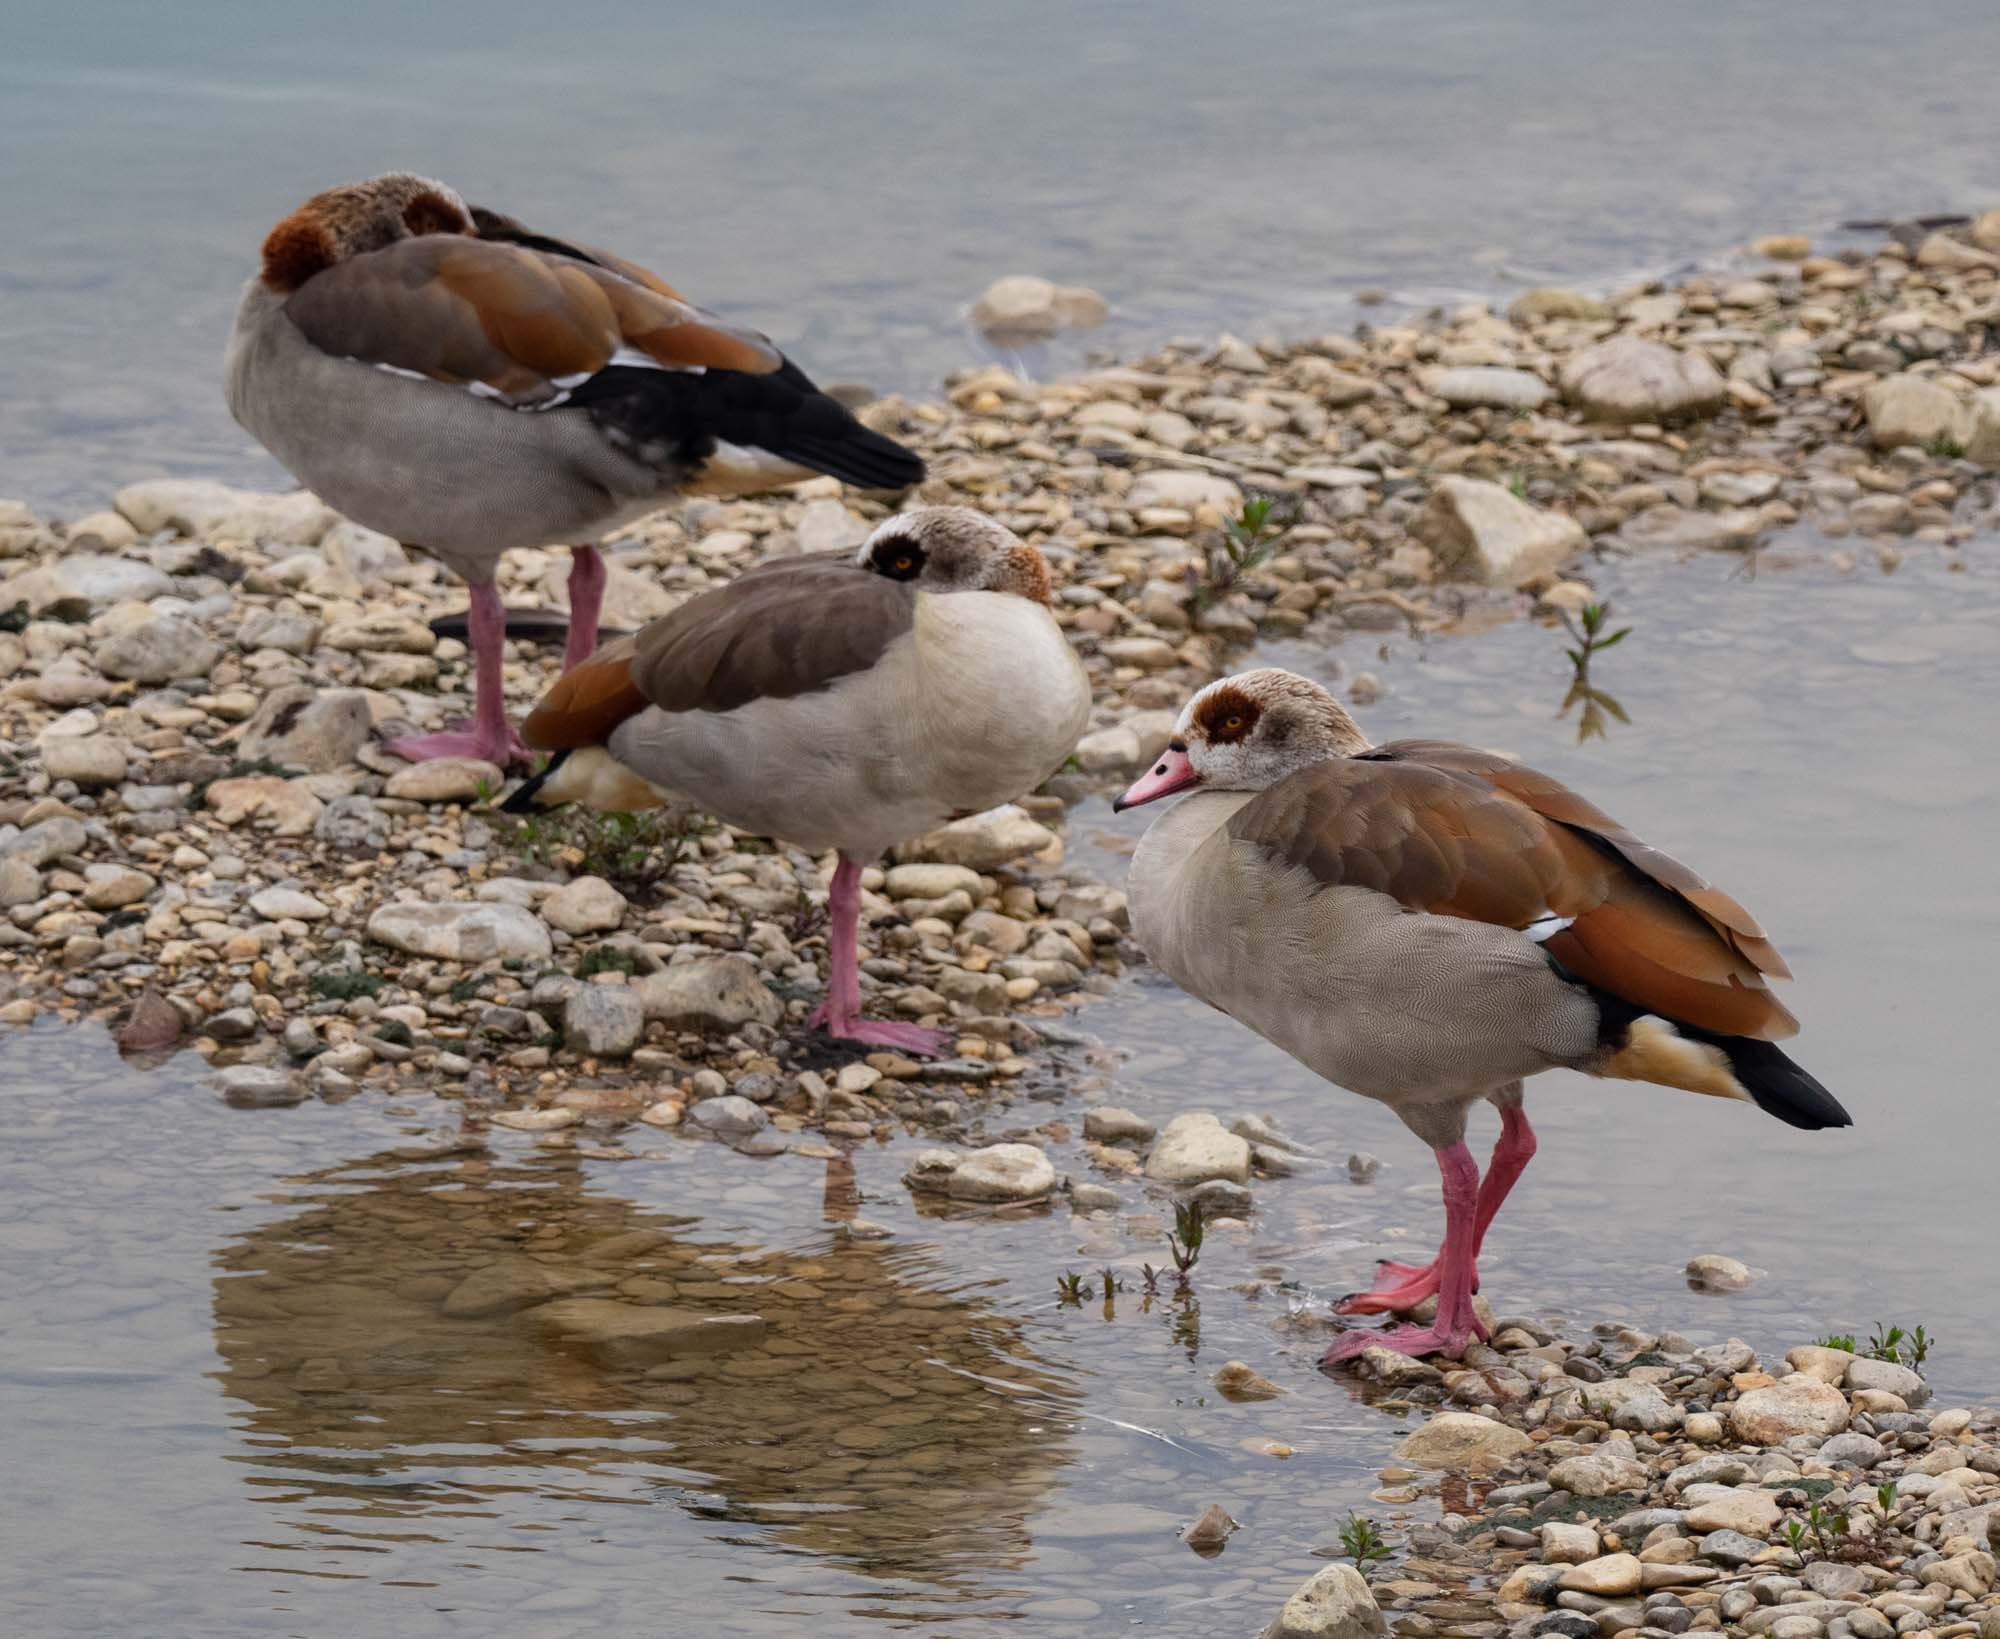 Egyptian Geese - an introduced species